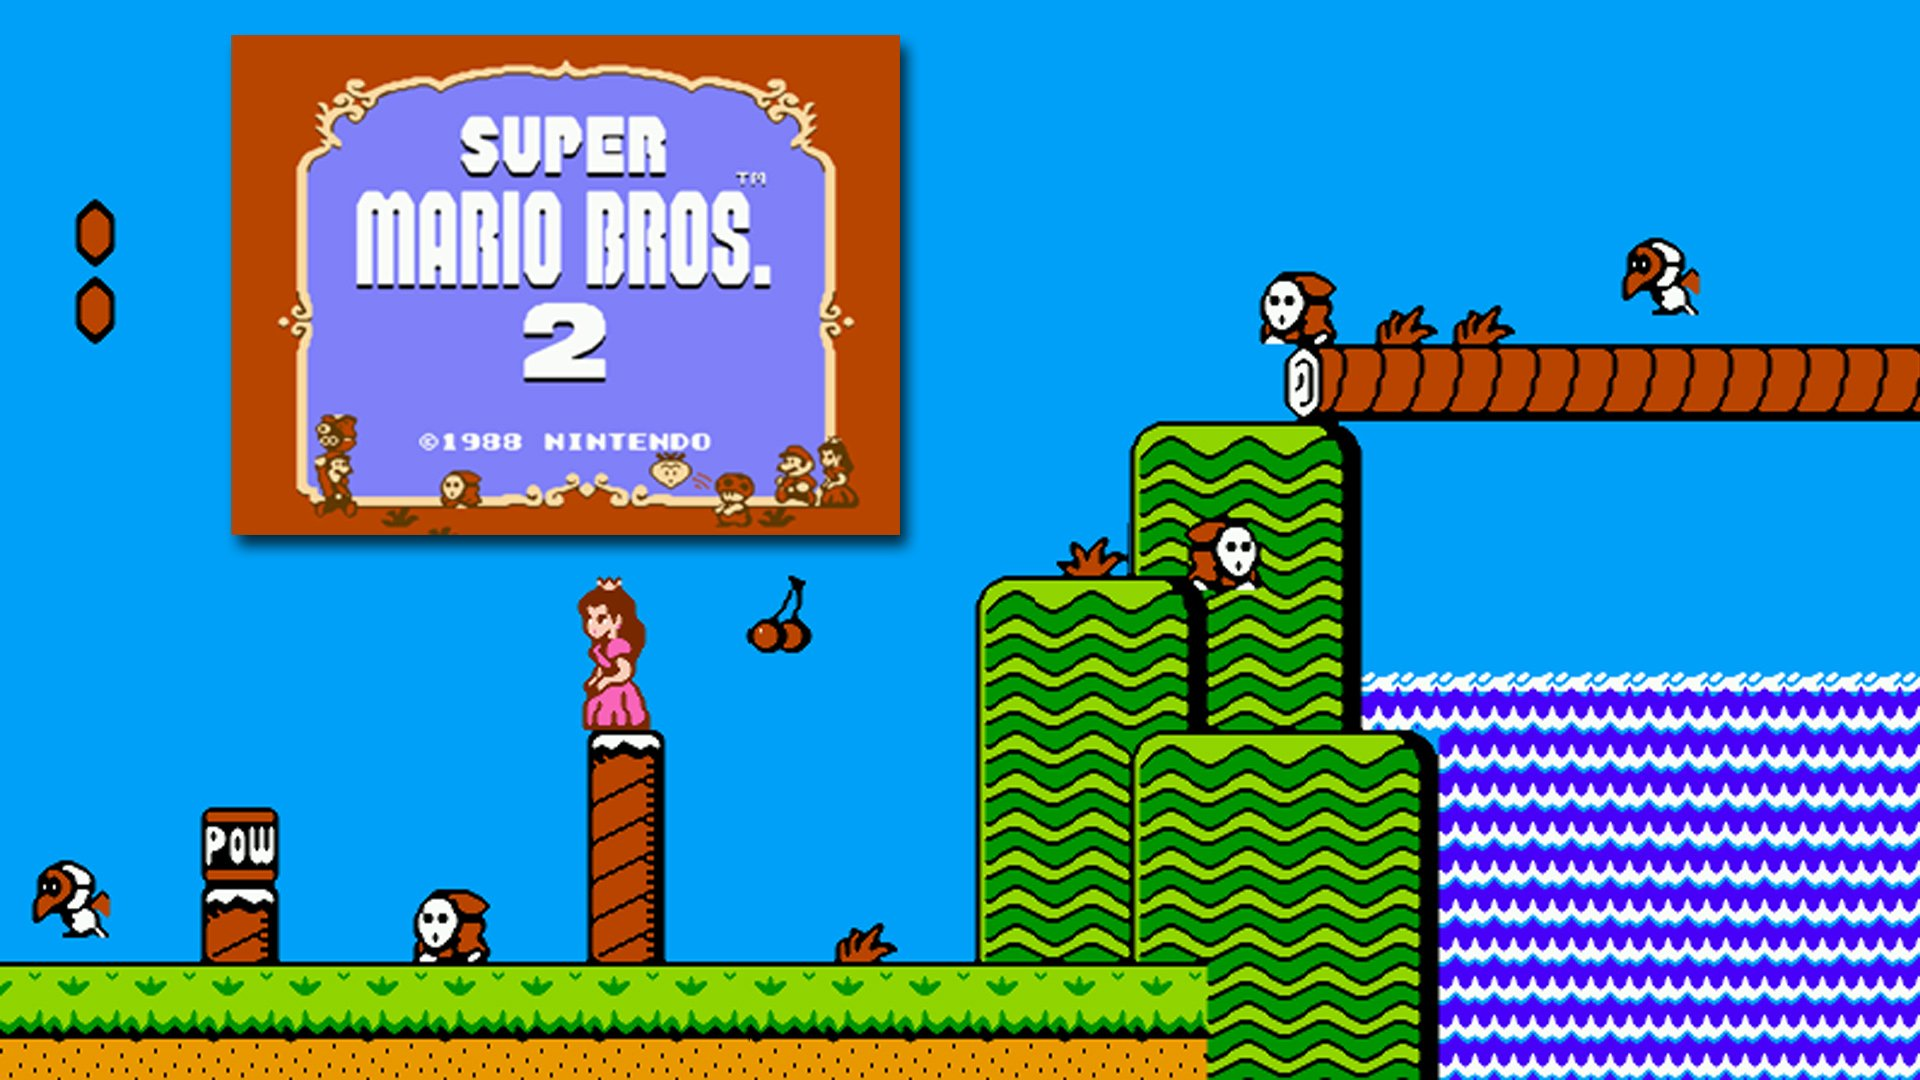 Super Mario Bros 2 Hd Wallpaper Background Image 1920x1080